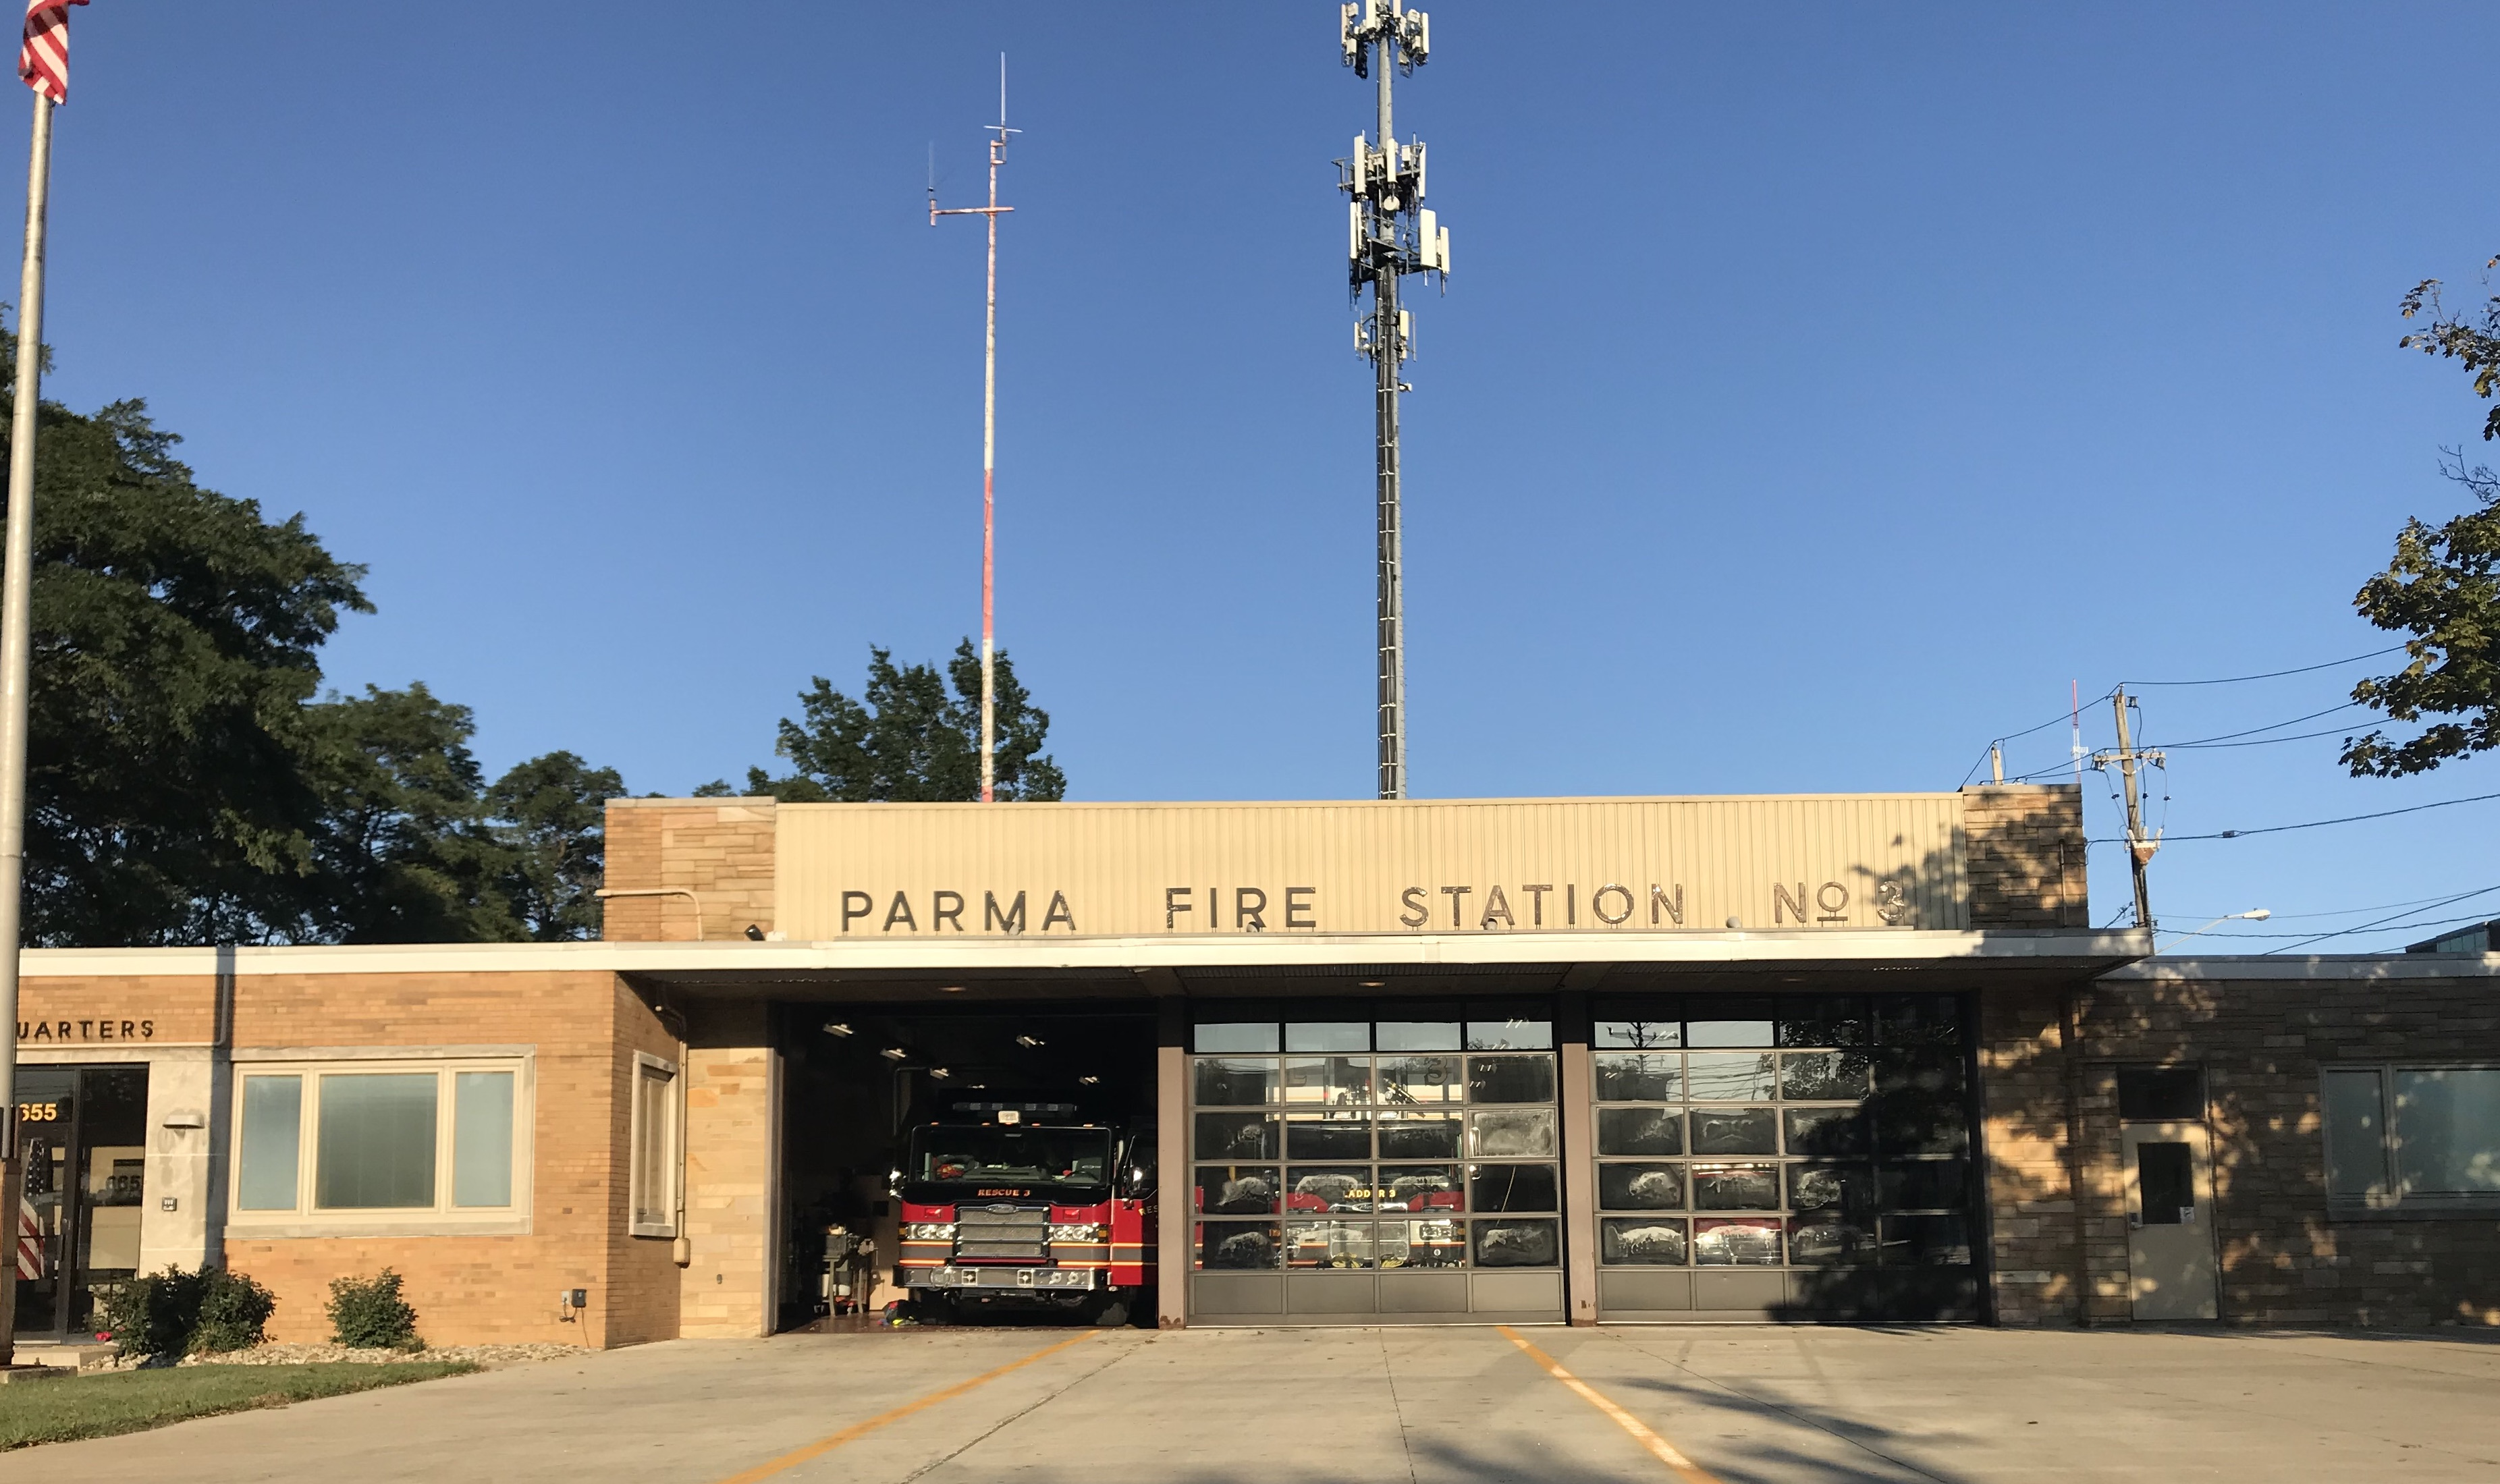 Parma Fire Department receives three grants, including $1 million to hire eight new firefighters